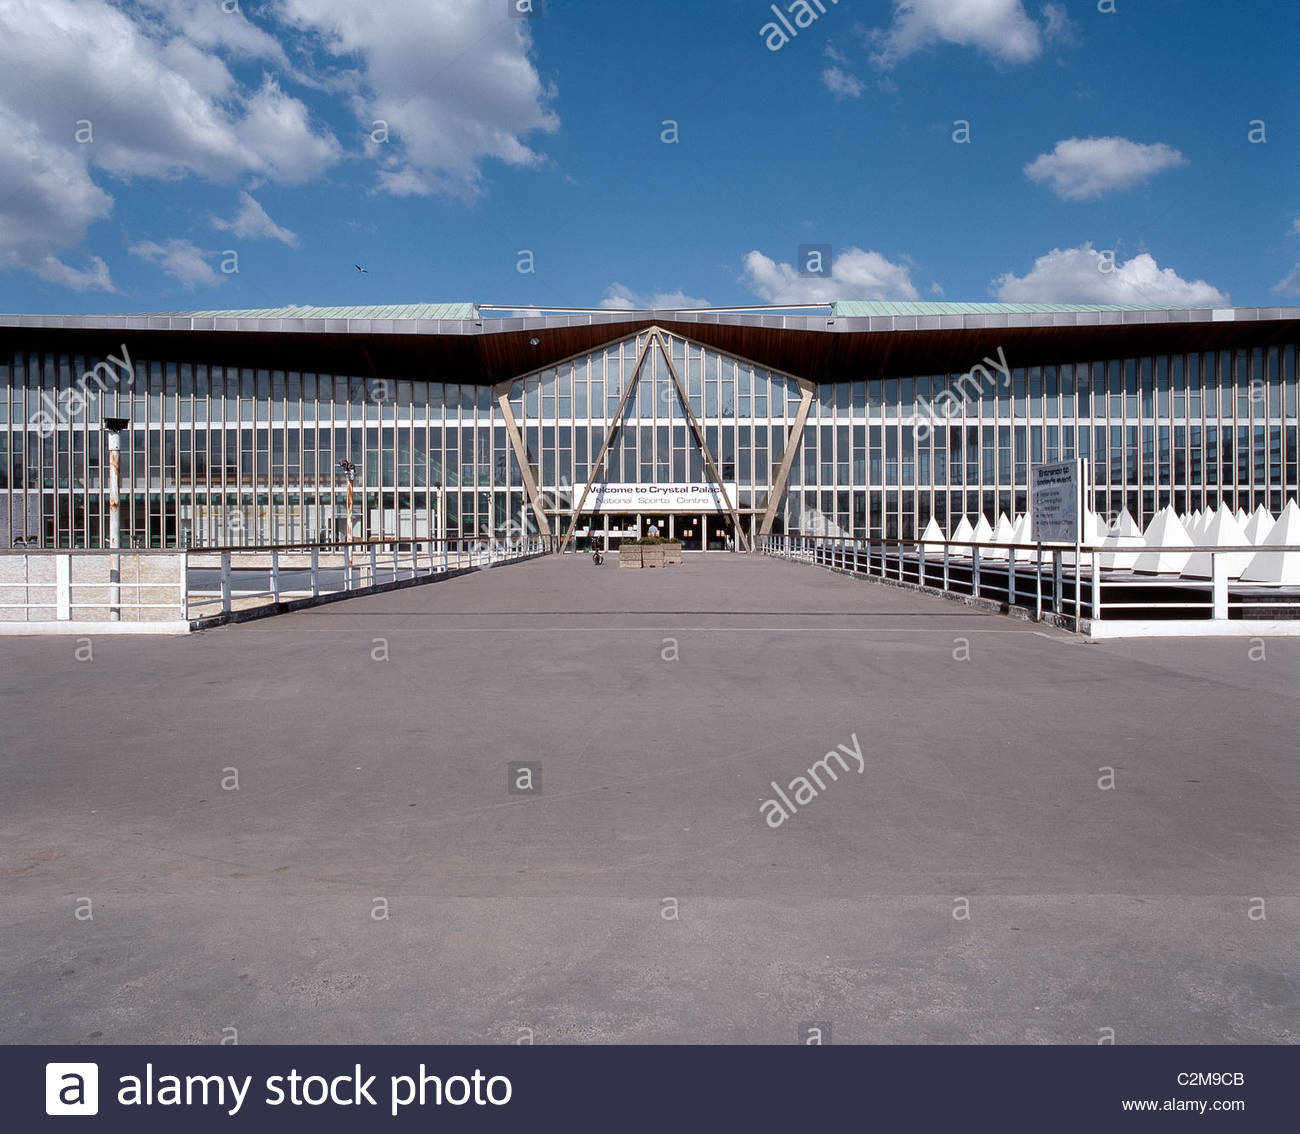 Crystal Palace National Sports Centre, London NSC   Stock Image